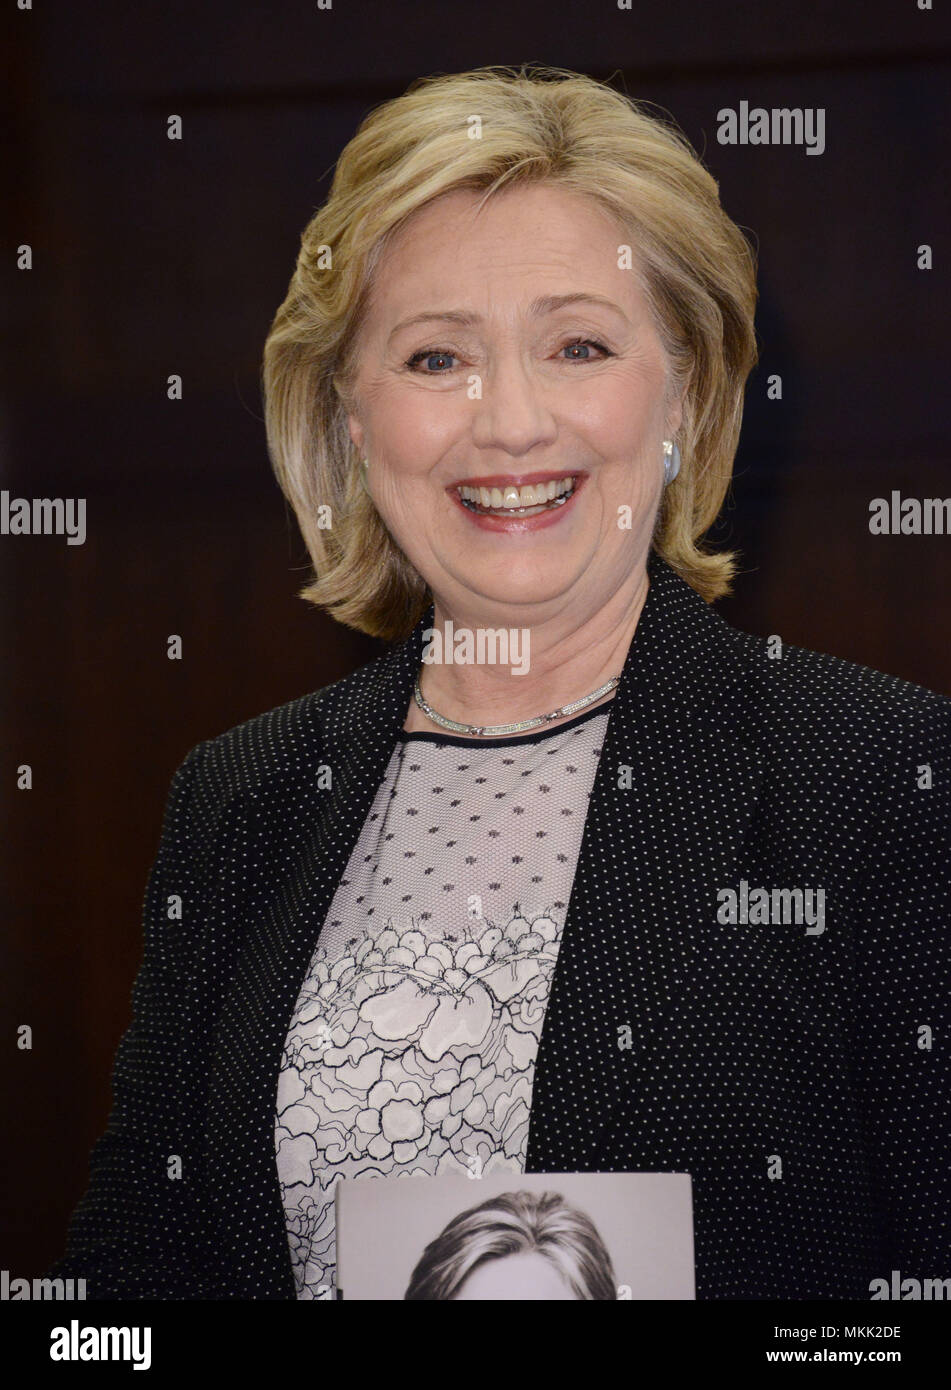 Clinton Vertical High Resolution Stock Photography And Images Alamy